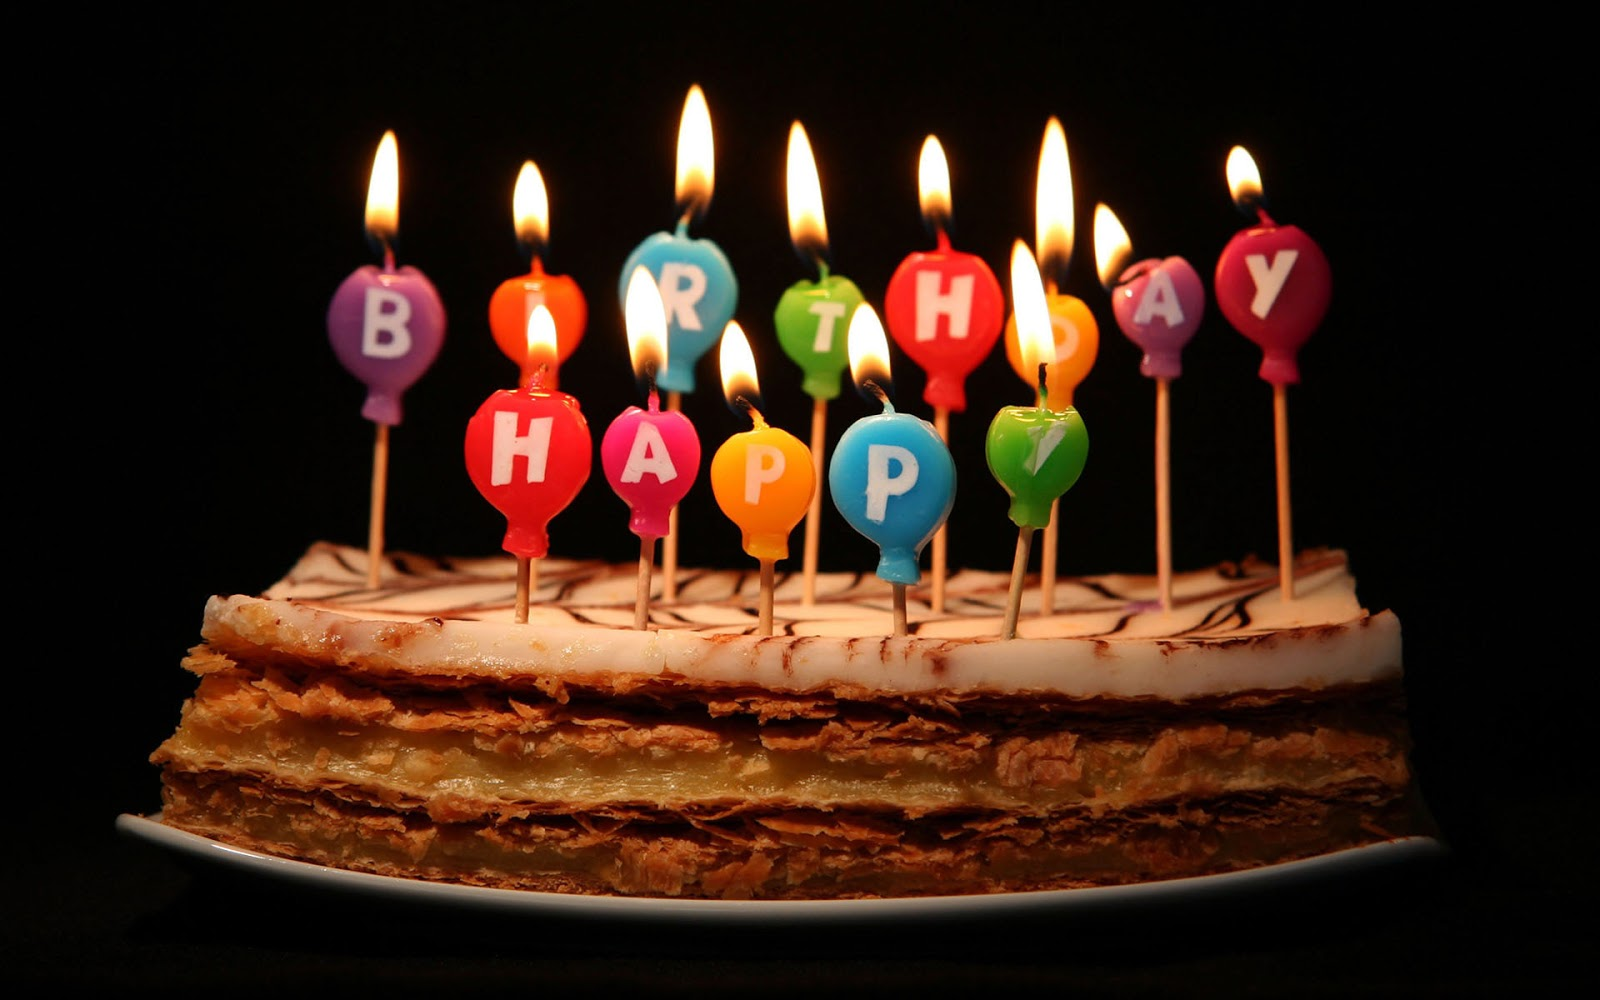 birthday images download hd ; candles-birthday-cake-with-black-background-images